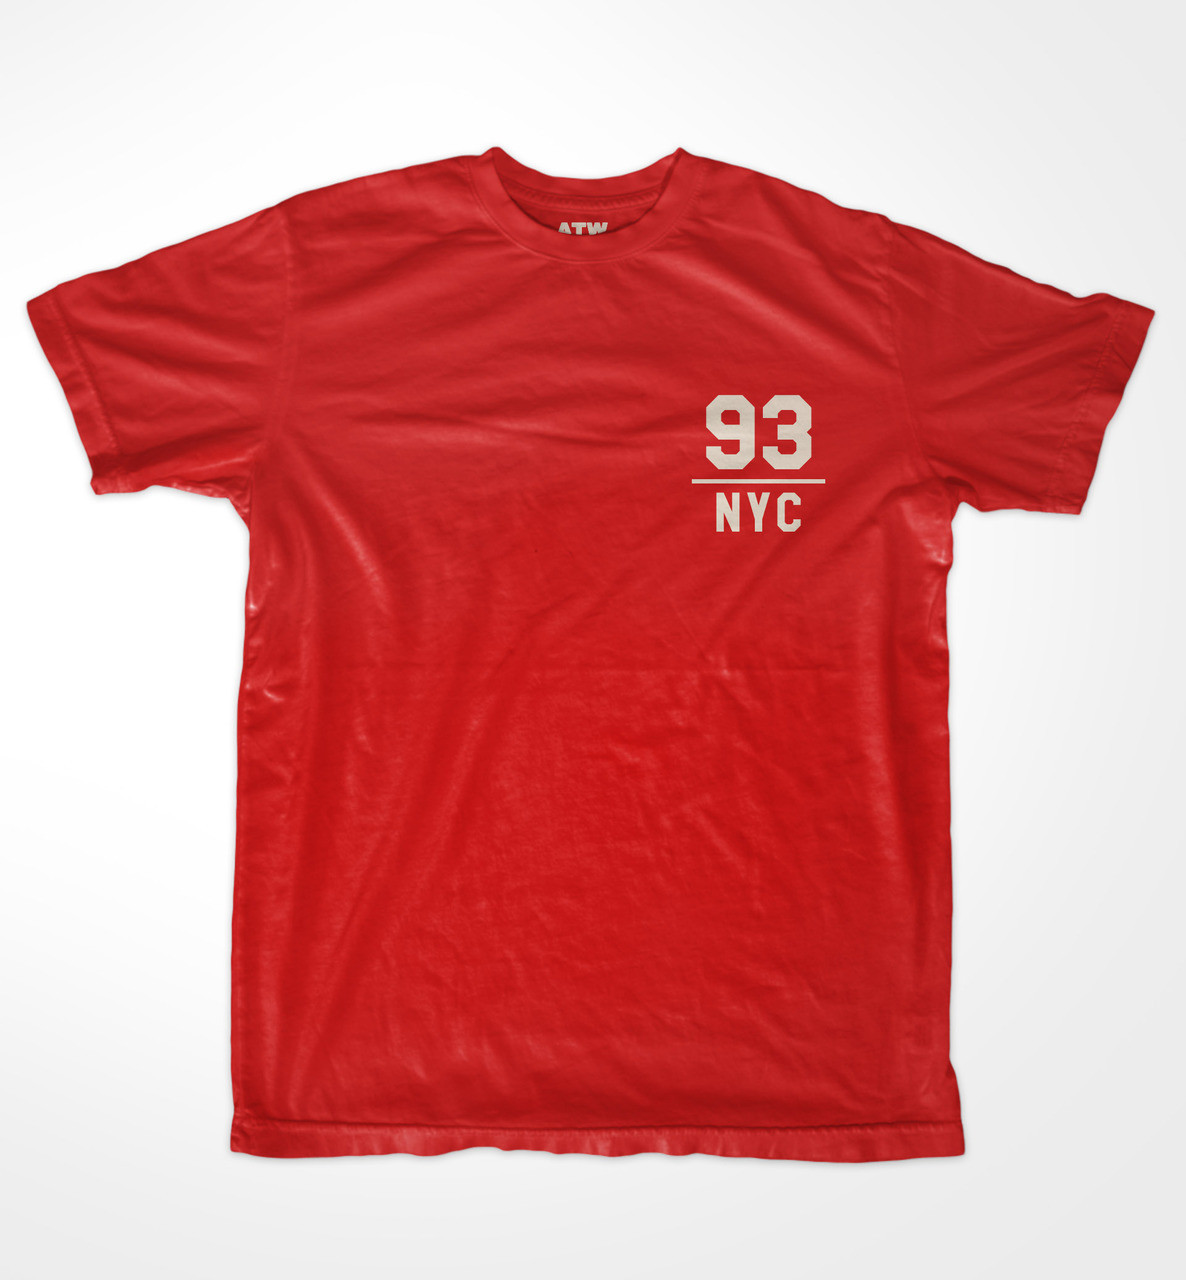 f5ef84d79219 NYC 93 T-shirt - A THOUSAND WORDS